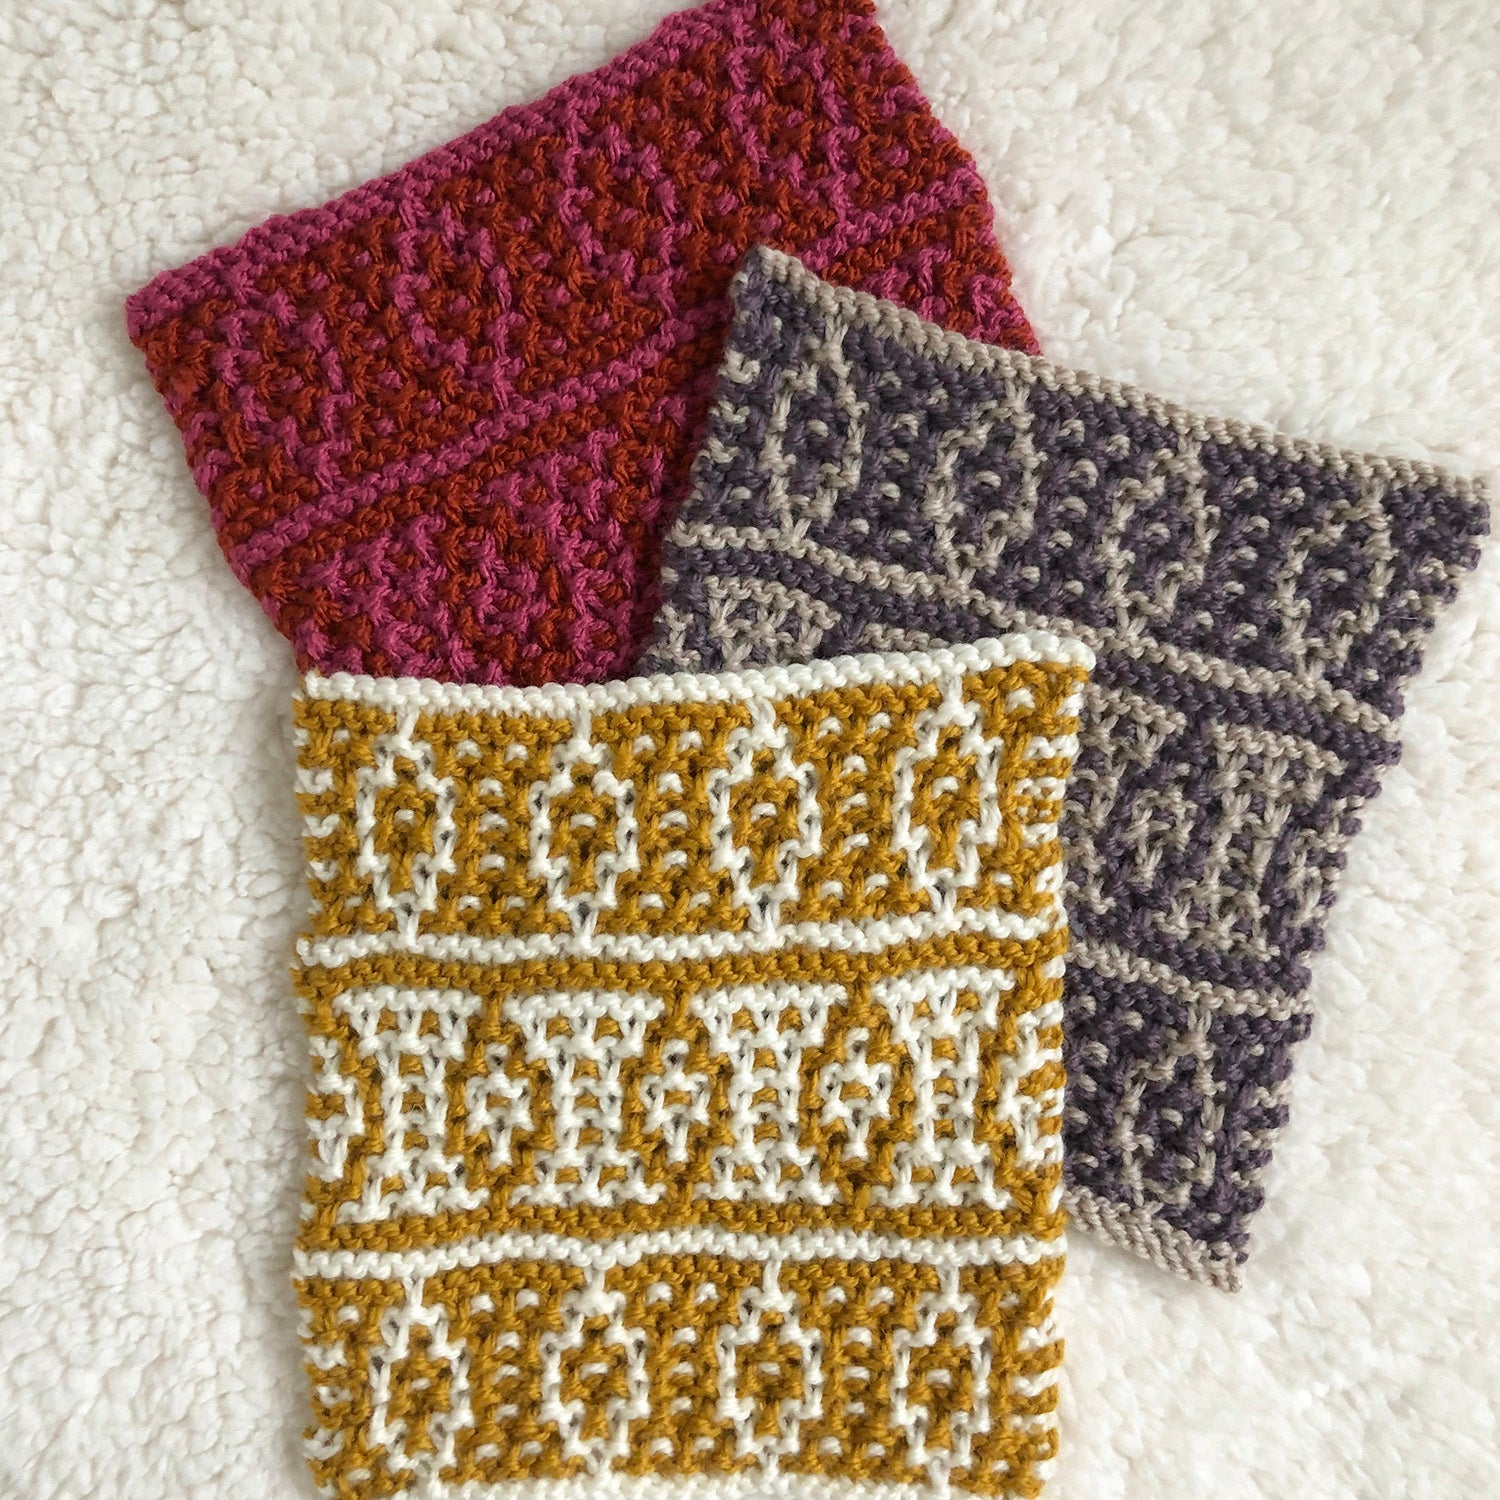 Week 5 Lady lane - A Day Out Knit Along Blanket by Sarah Hatton - Mosaic knitting